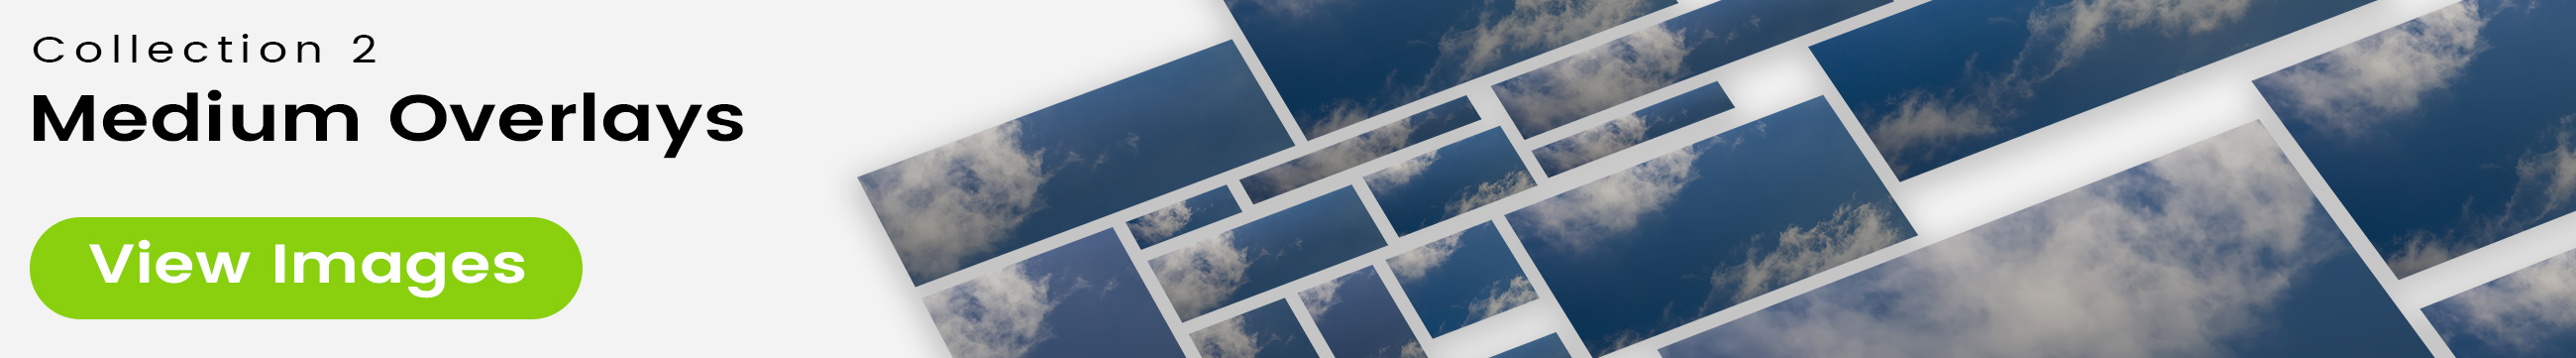 See 25 bonus images included with clouds stock image 9471. Collection 2 of 4 features a medium-dark overlay design.